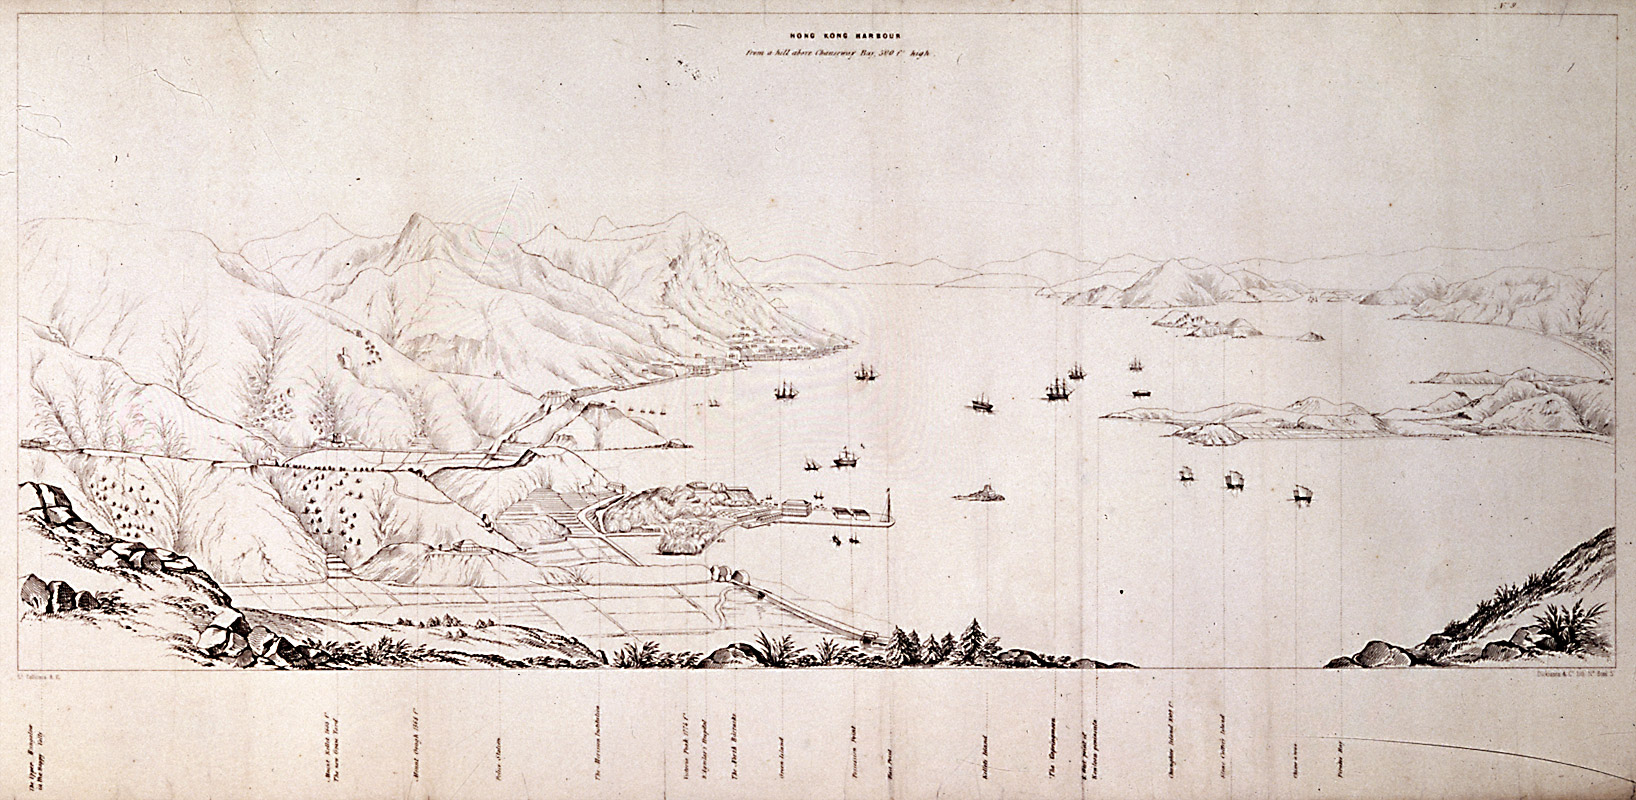 Hong Kong harbour from a hill above Causeway Bay. Drawn by Thomas Bernard Collinson, 1845.